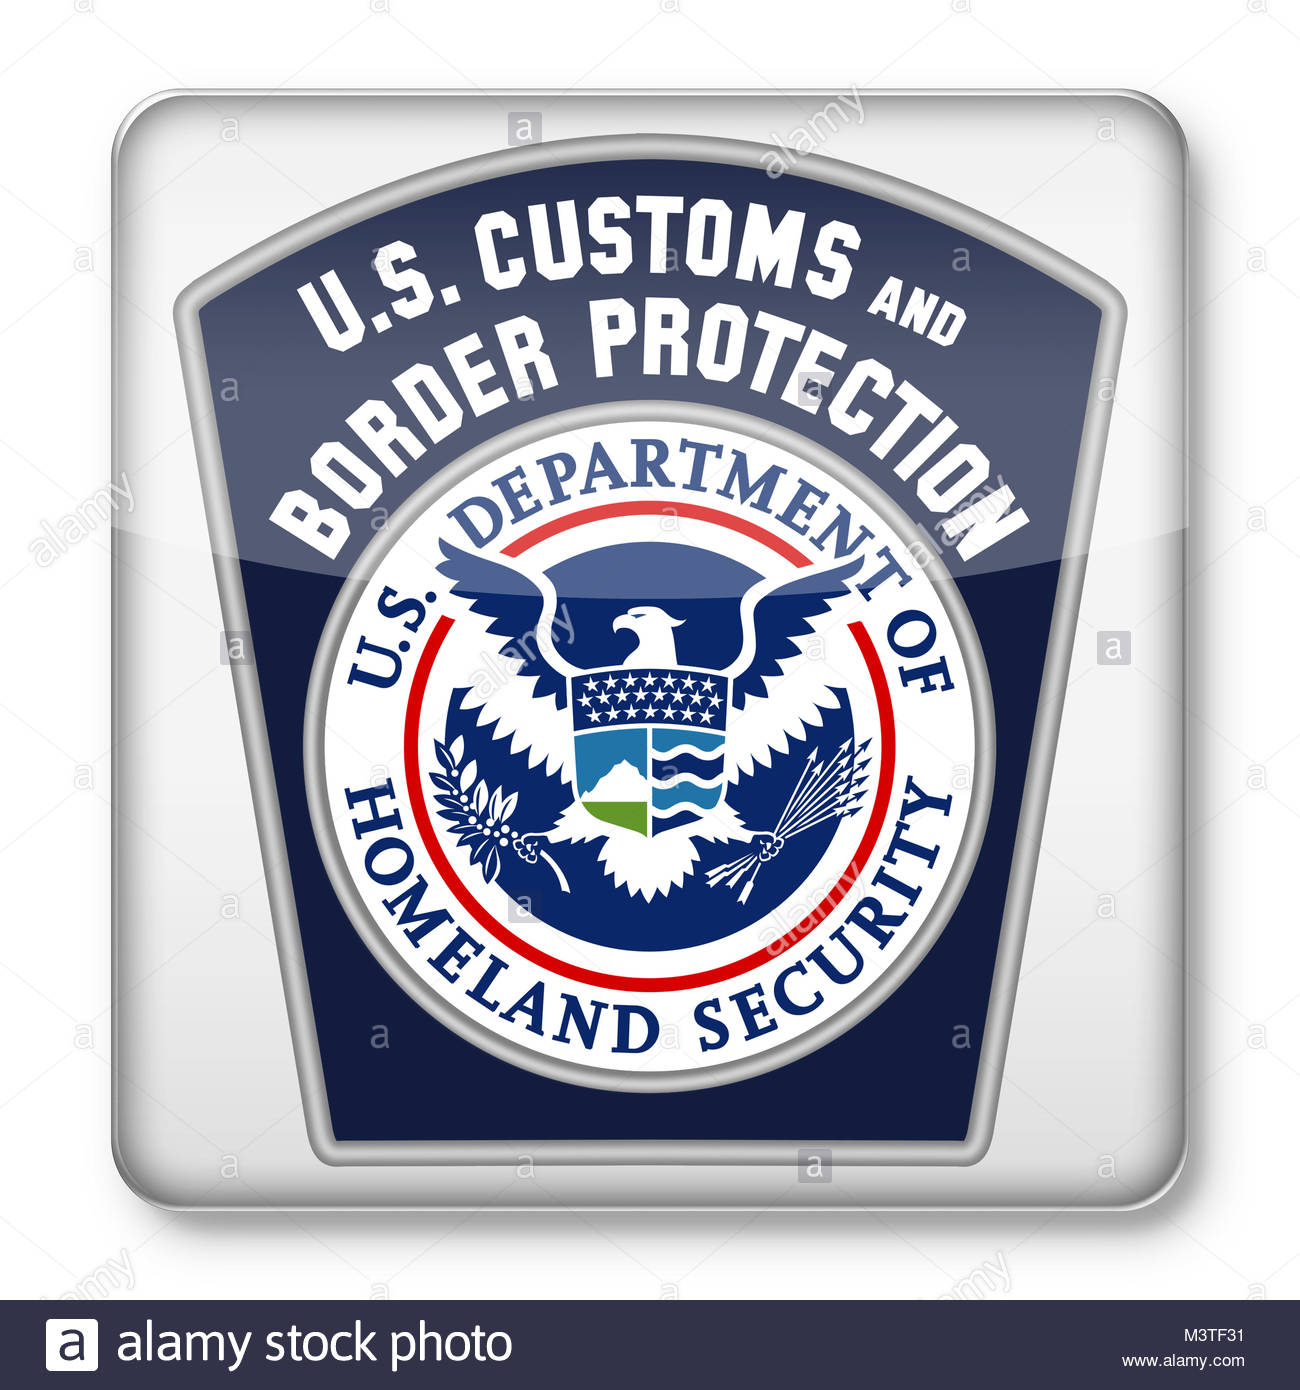 U.S. Customs and Border Protection CBP logo icon - Stock Image